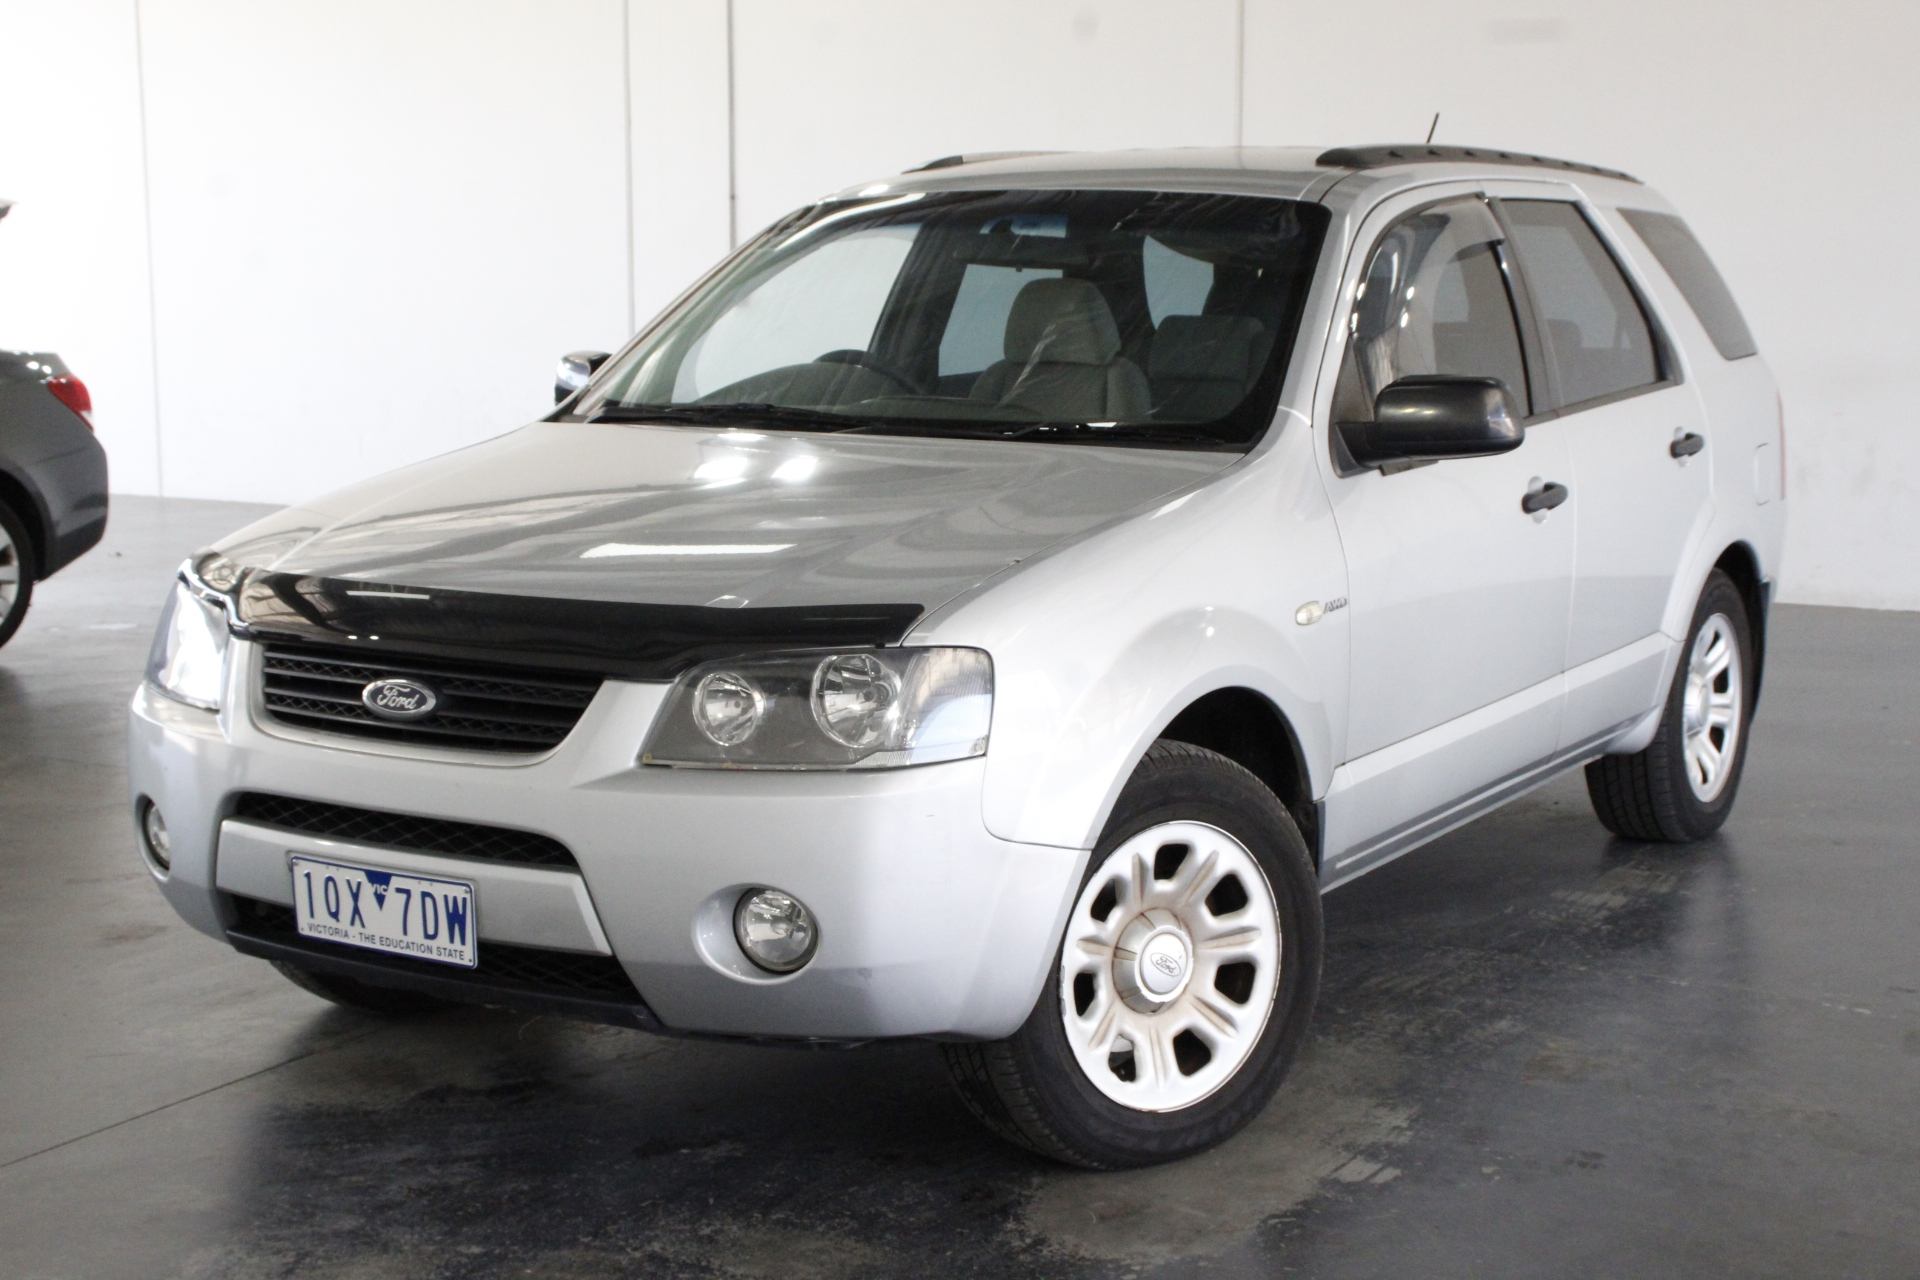 2005 Ford Territory TX (4x4) SX Automatic Wagon